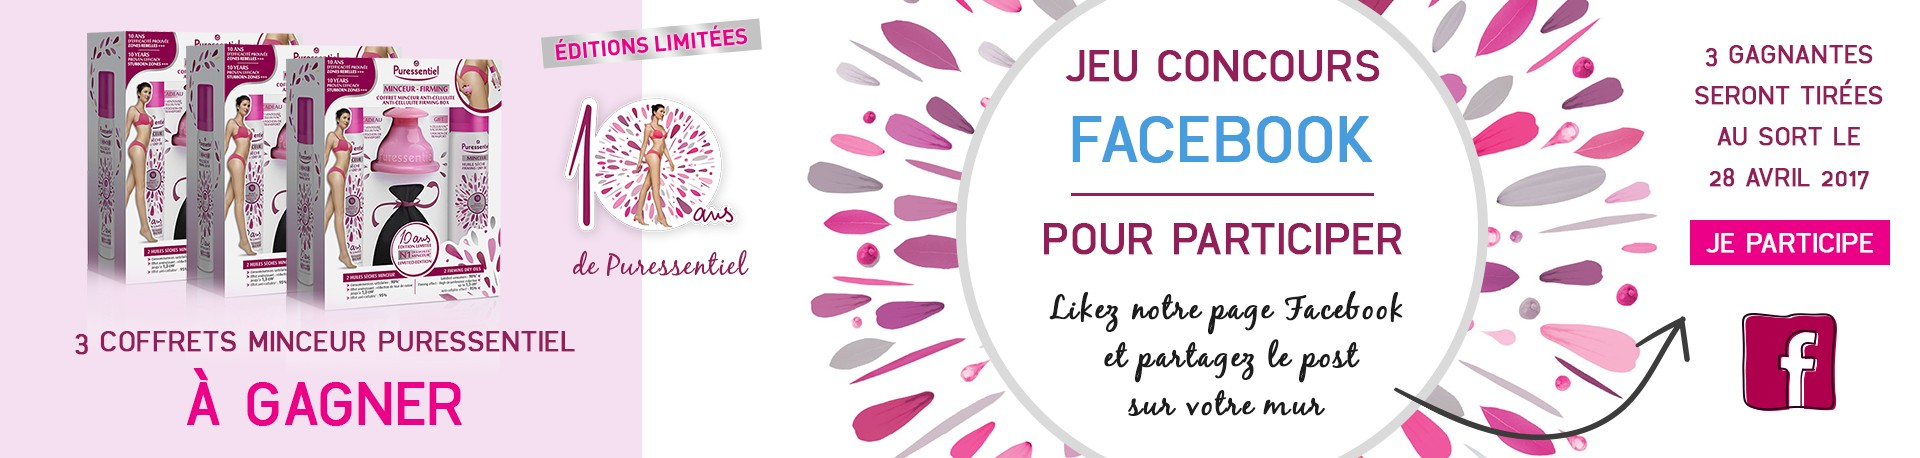 concours puressentiel avril